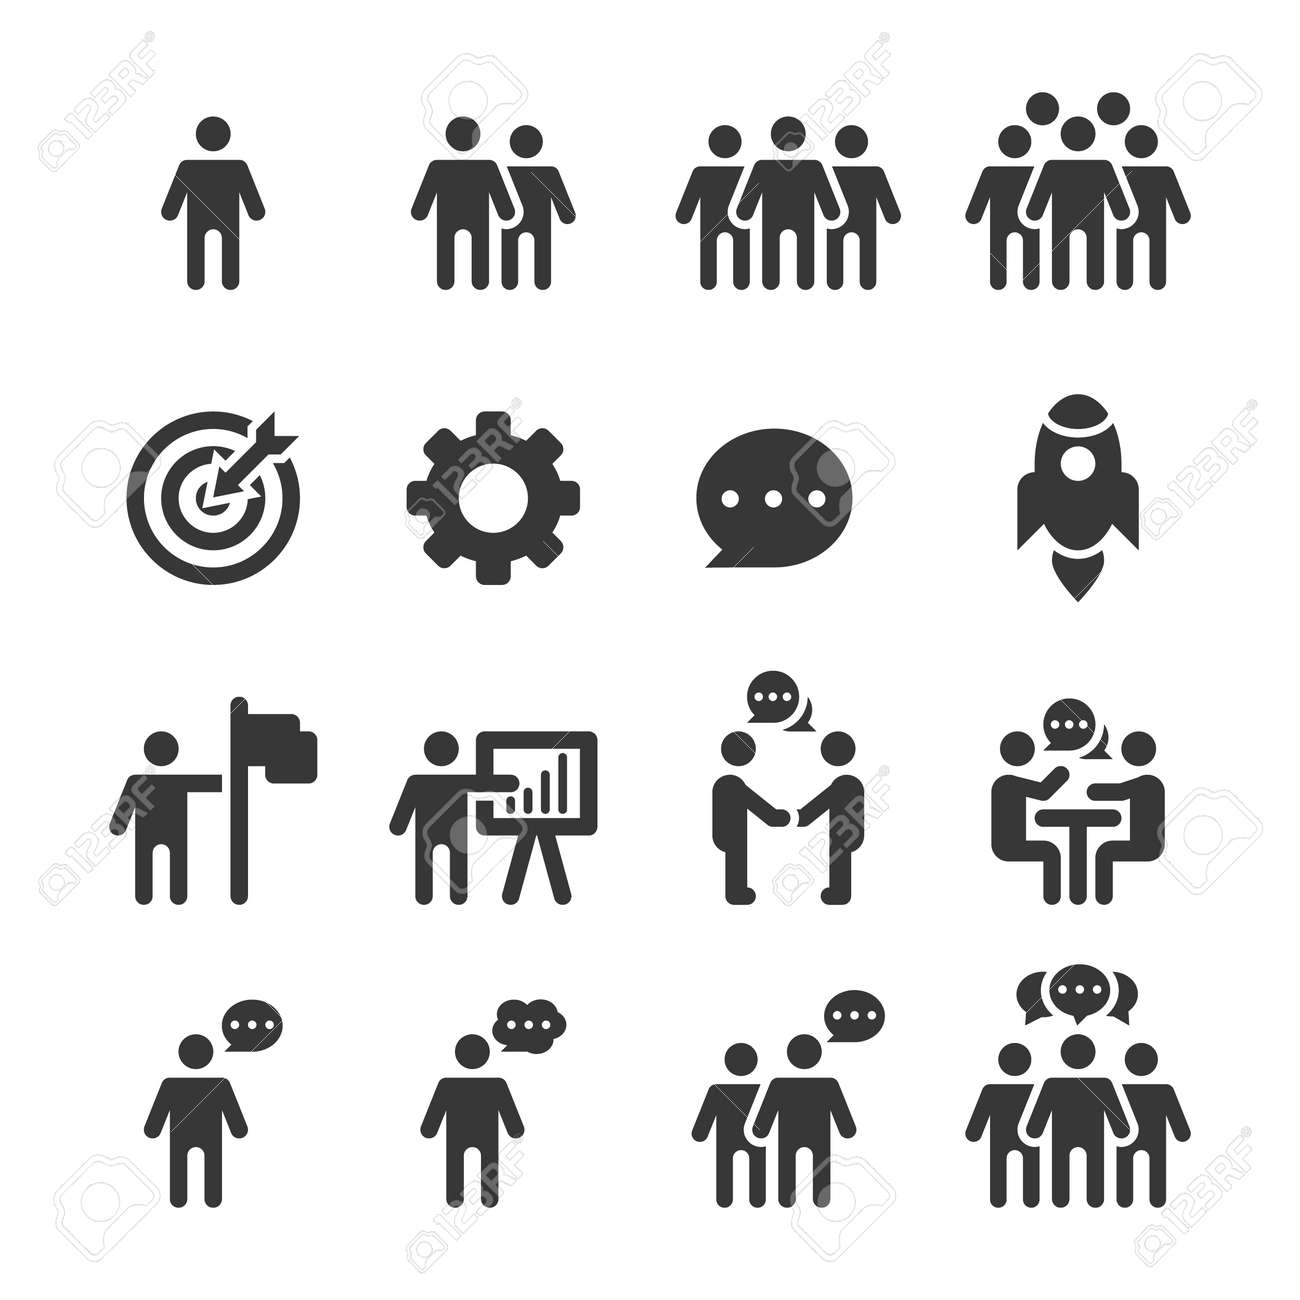 People Icons, Person work group Team Vector - 134588475